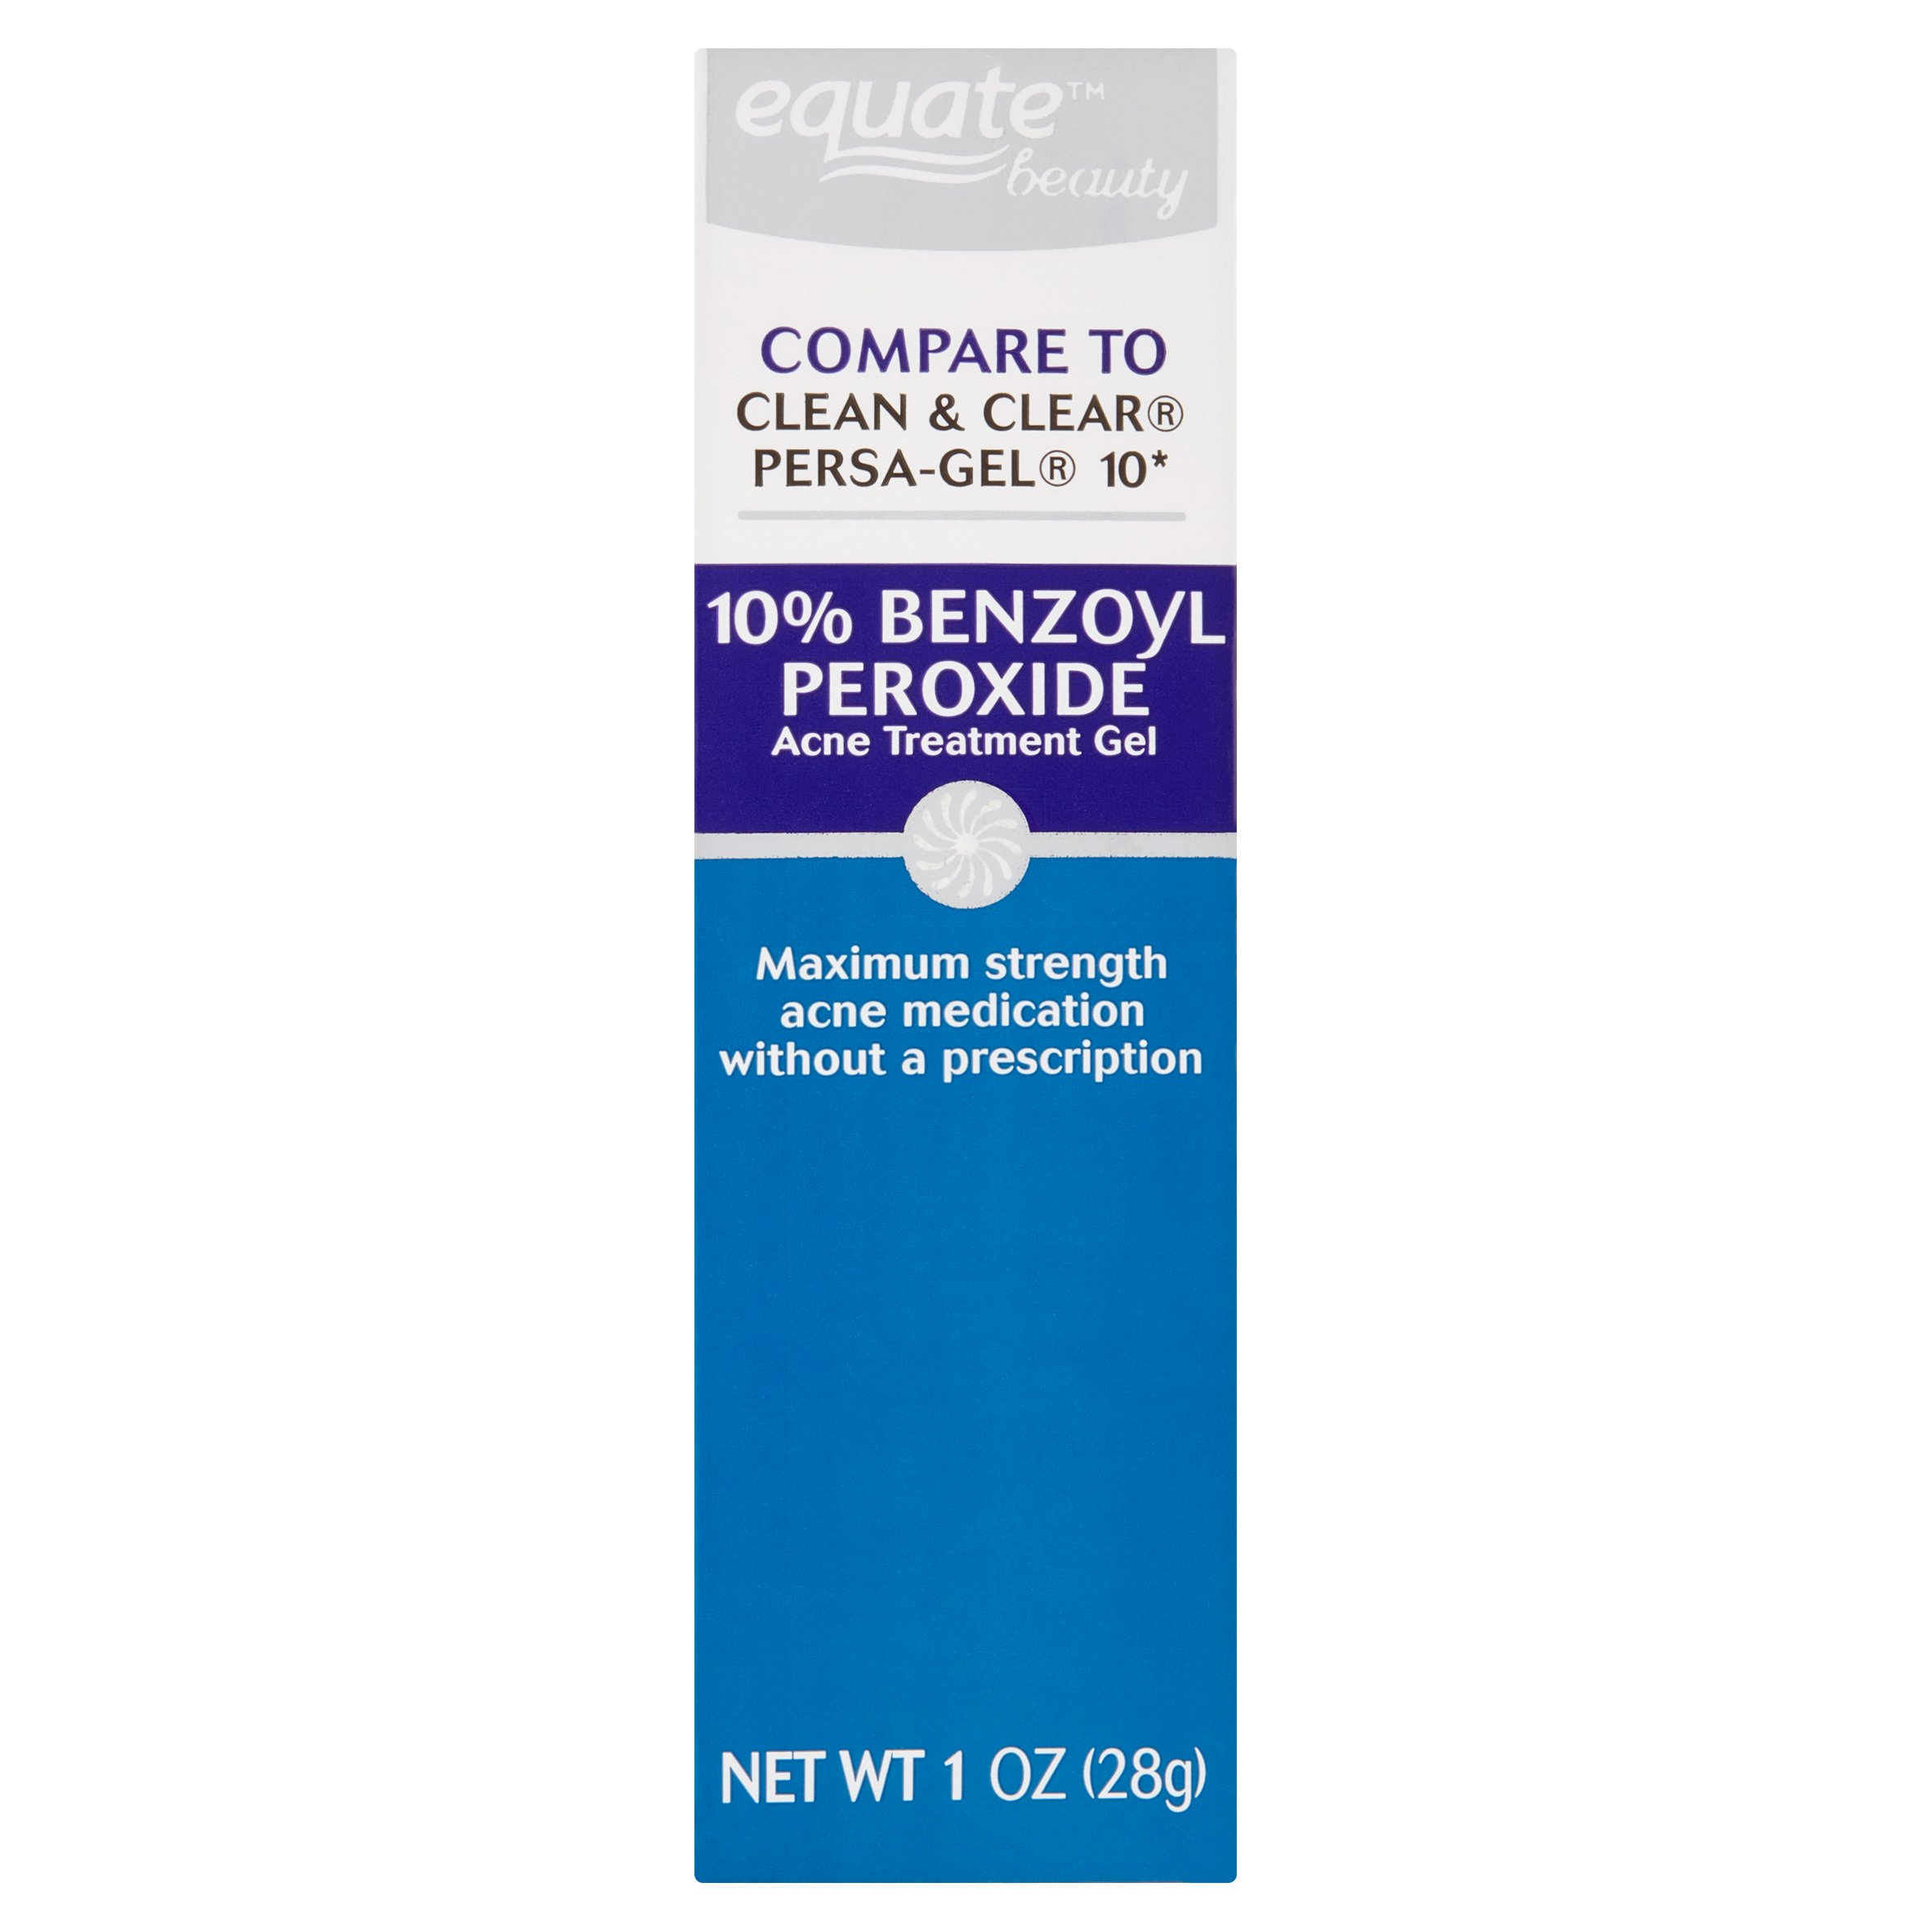 Equate Beauty 10 Benzoyl Peroxide Acne Treatment Gel 1 Oz From